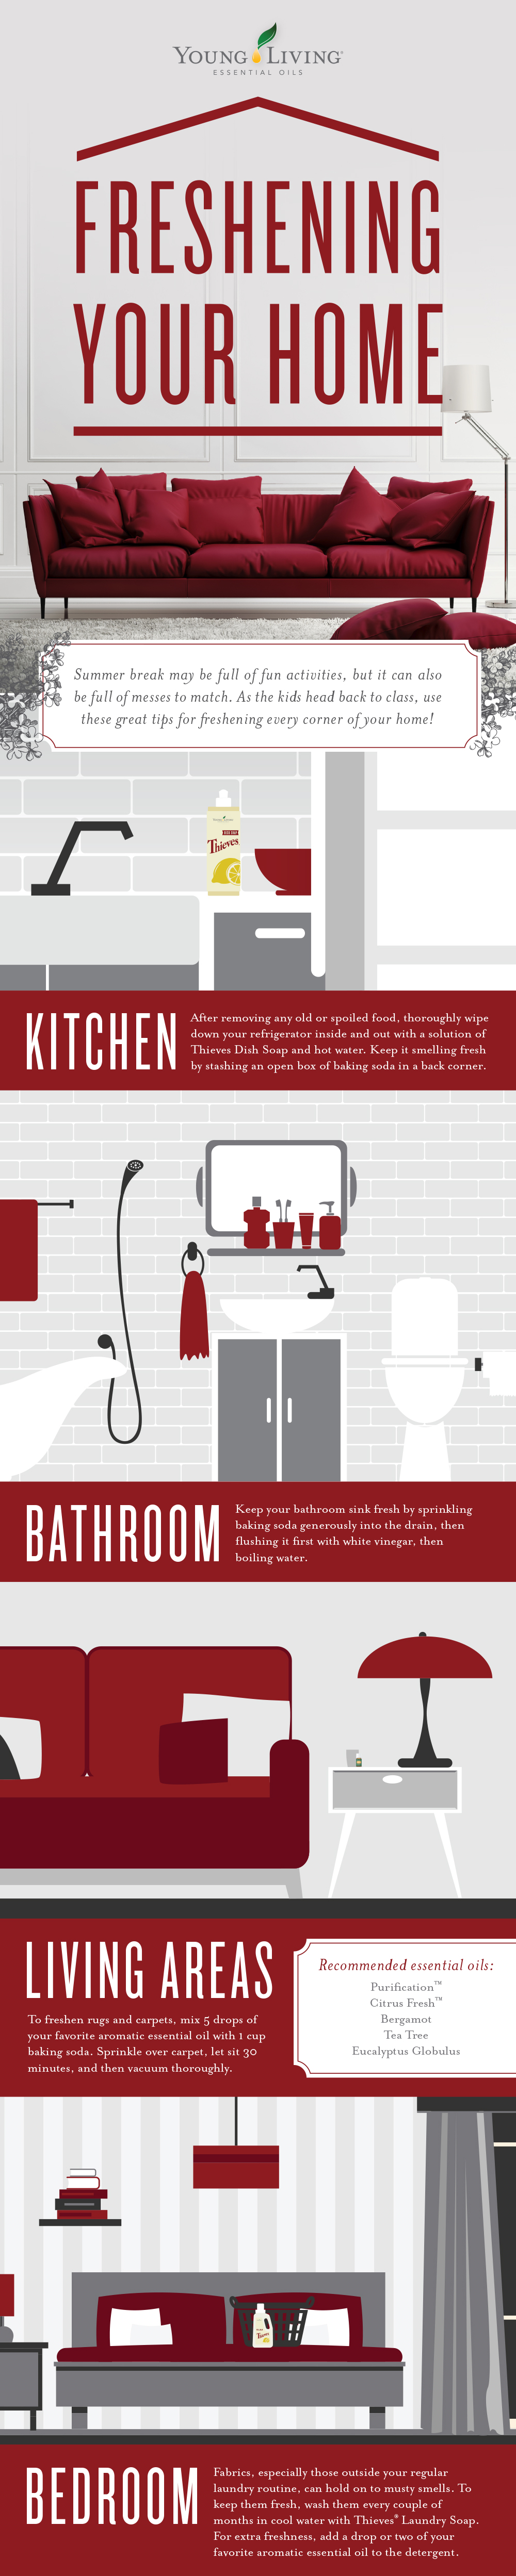 freshening-your-home-infographic_JeS_0915.jpg